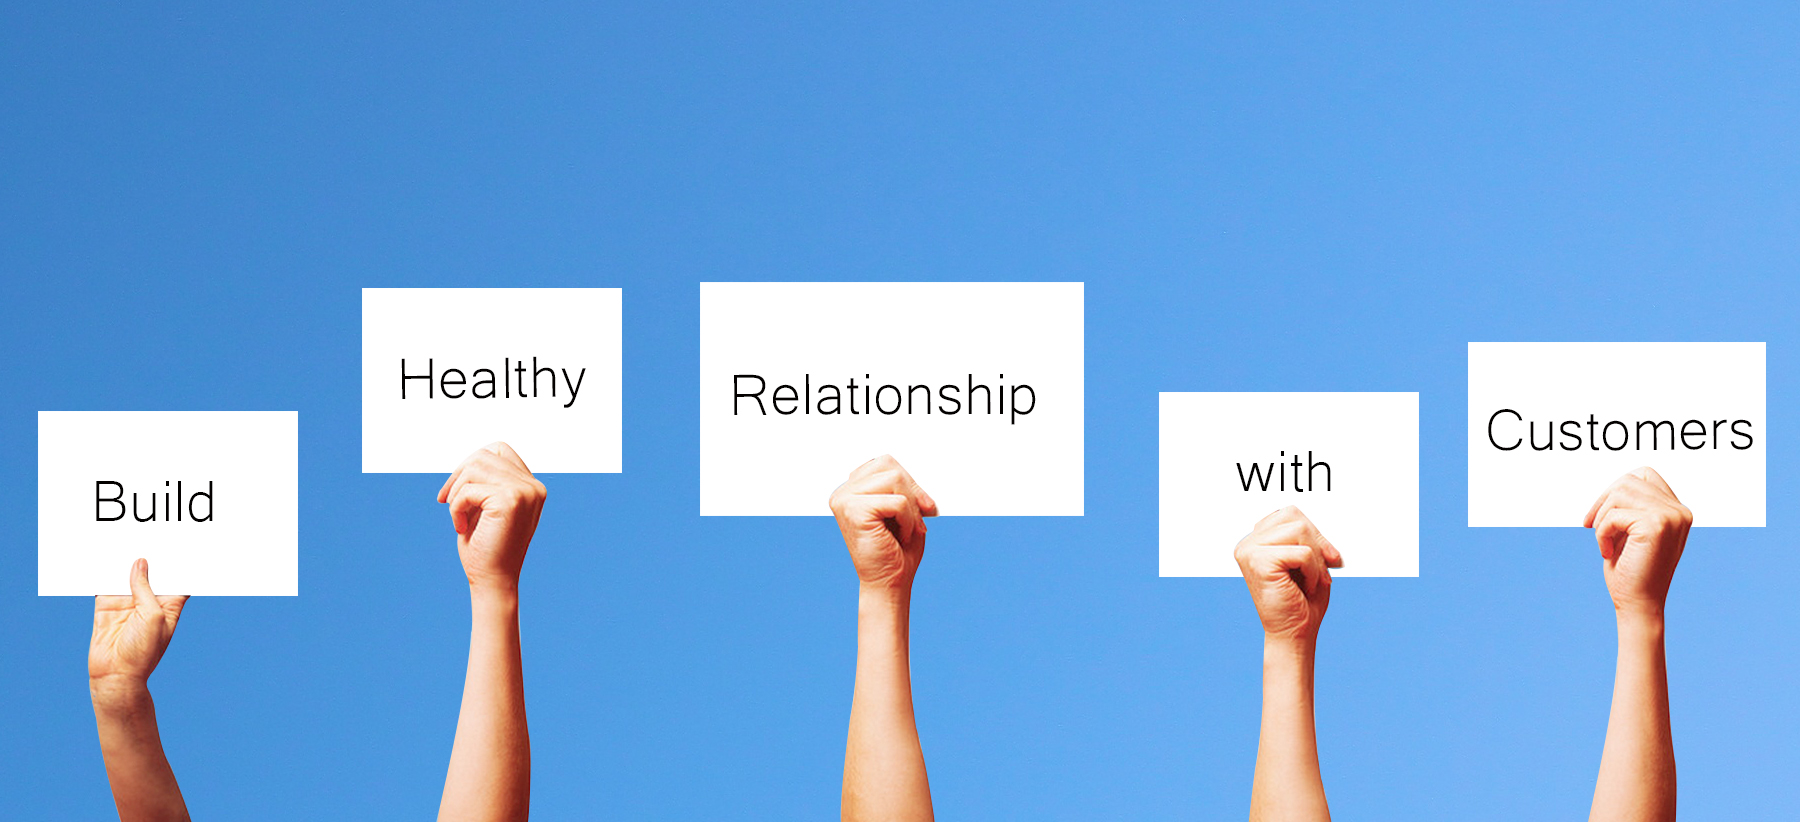 Build healthy Relationship with customers new